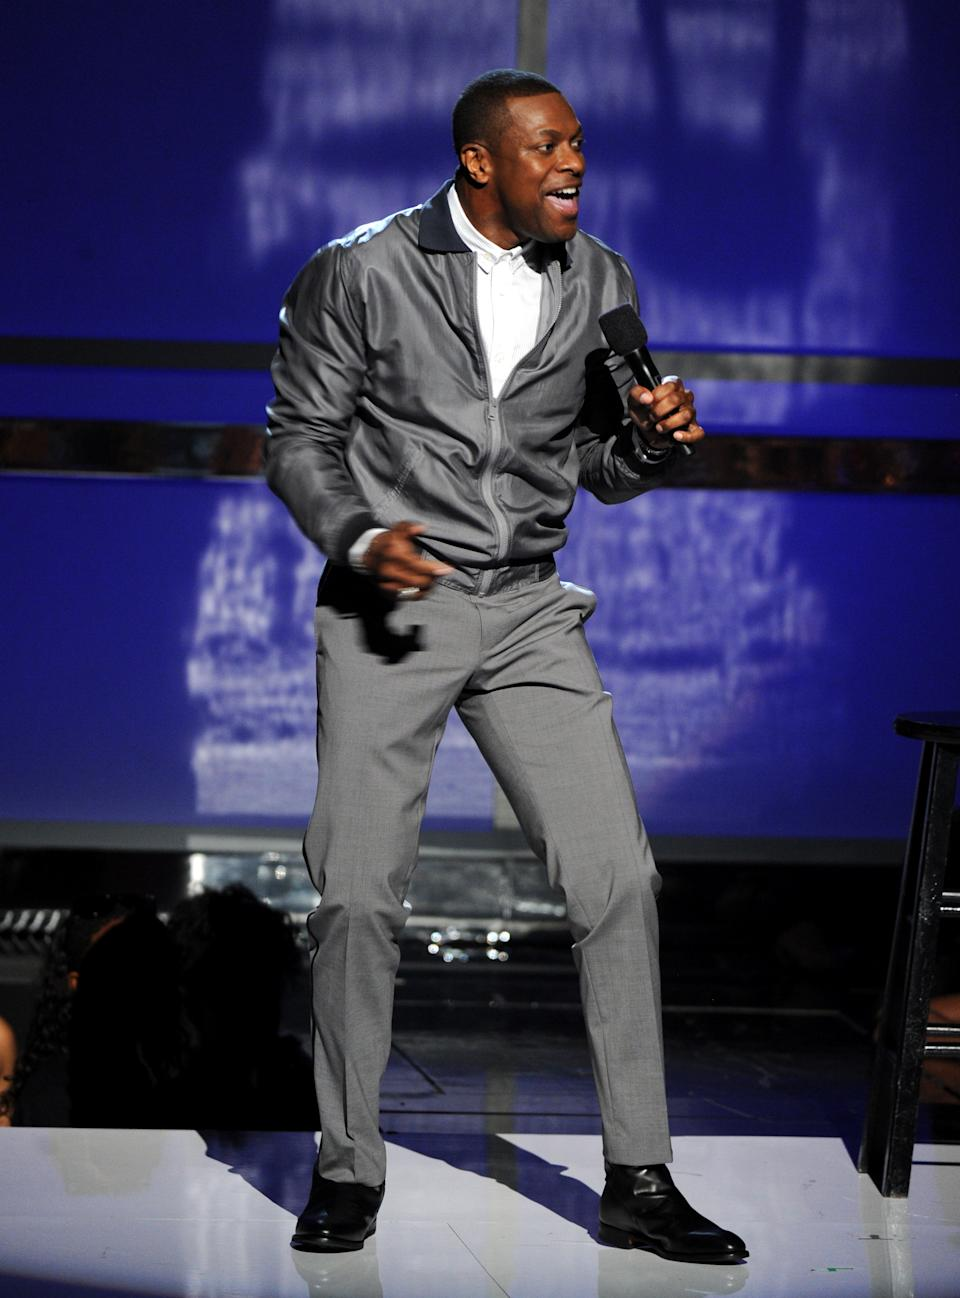 Chris Tucker speaks onstage at the BET Awards at the Nokia Theatre on Sunday, June 30, 2013, in Los Angeles. (Photo by Frank Micelotta/Invision/AP)